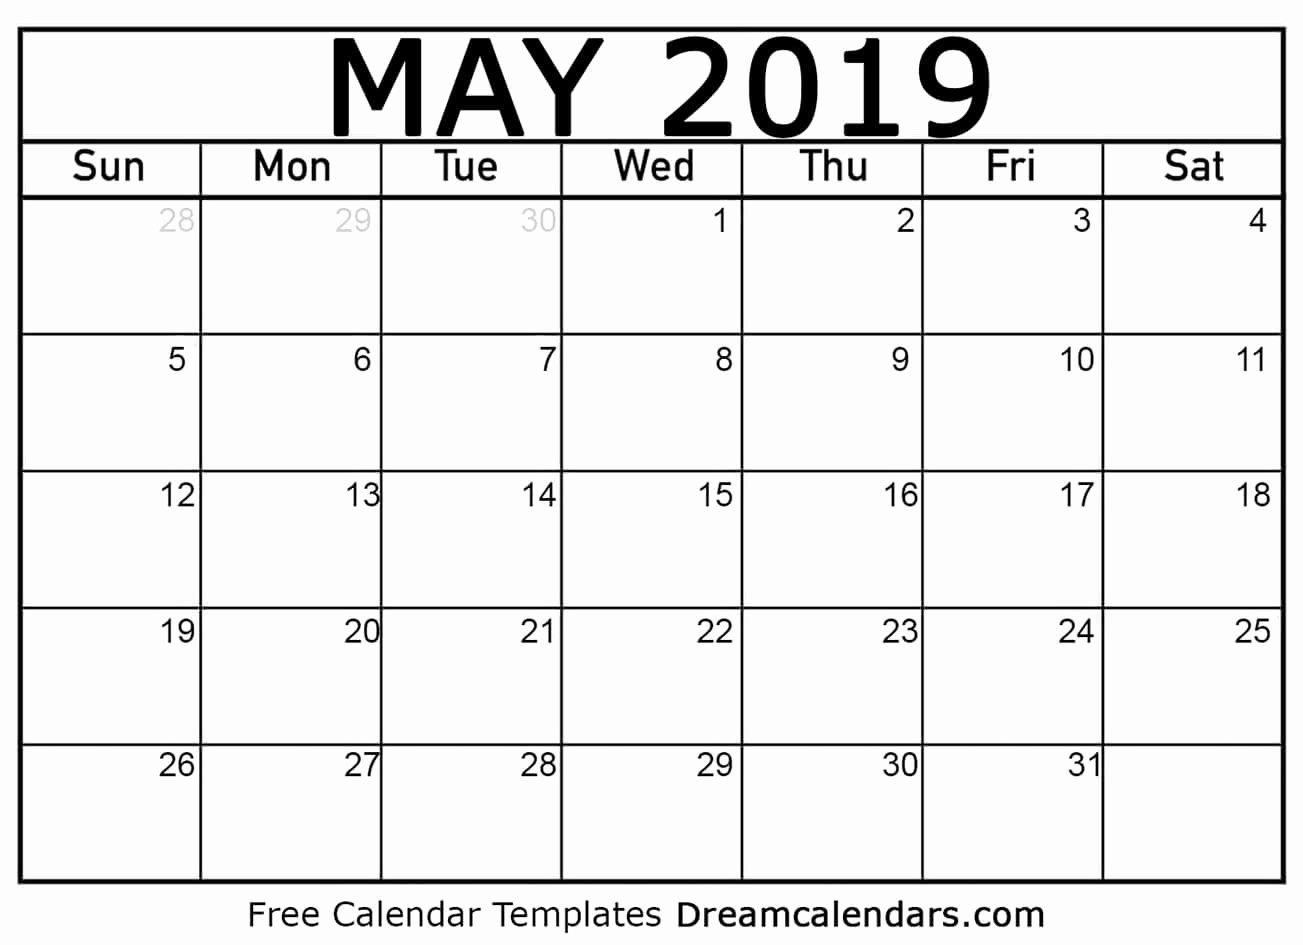 Blank Calendar Template 2019 Unique How to A Printed or Printable Calendar for May 2019